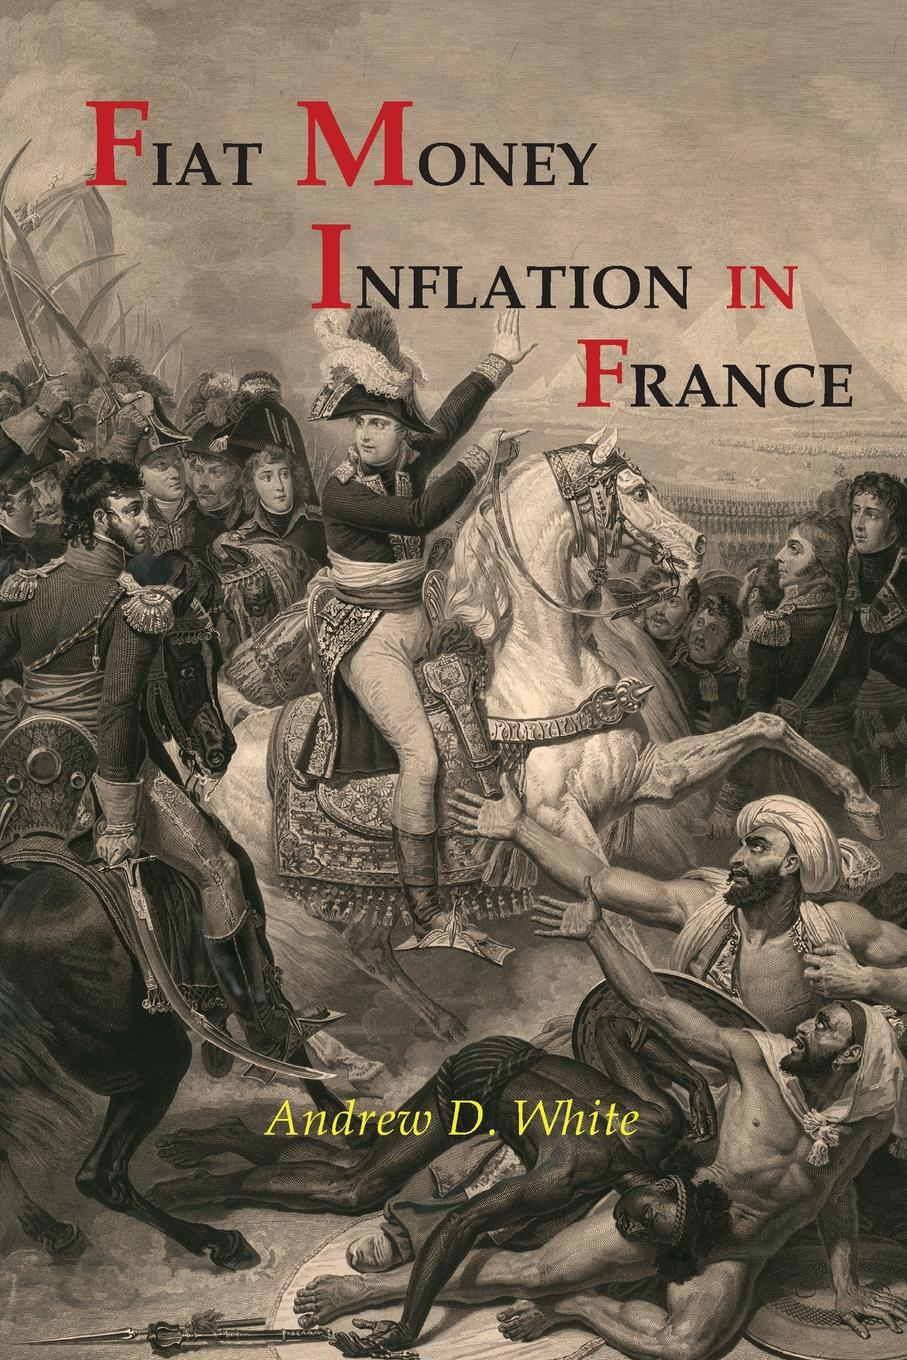 Fiat Money Inflation in France 2017 Reprint of 1958 Edition. Full facsimile of the original edition...